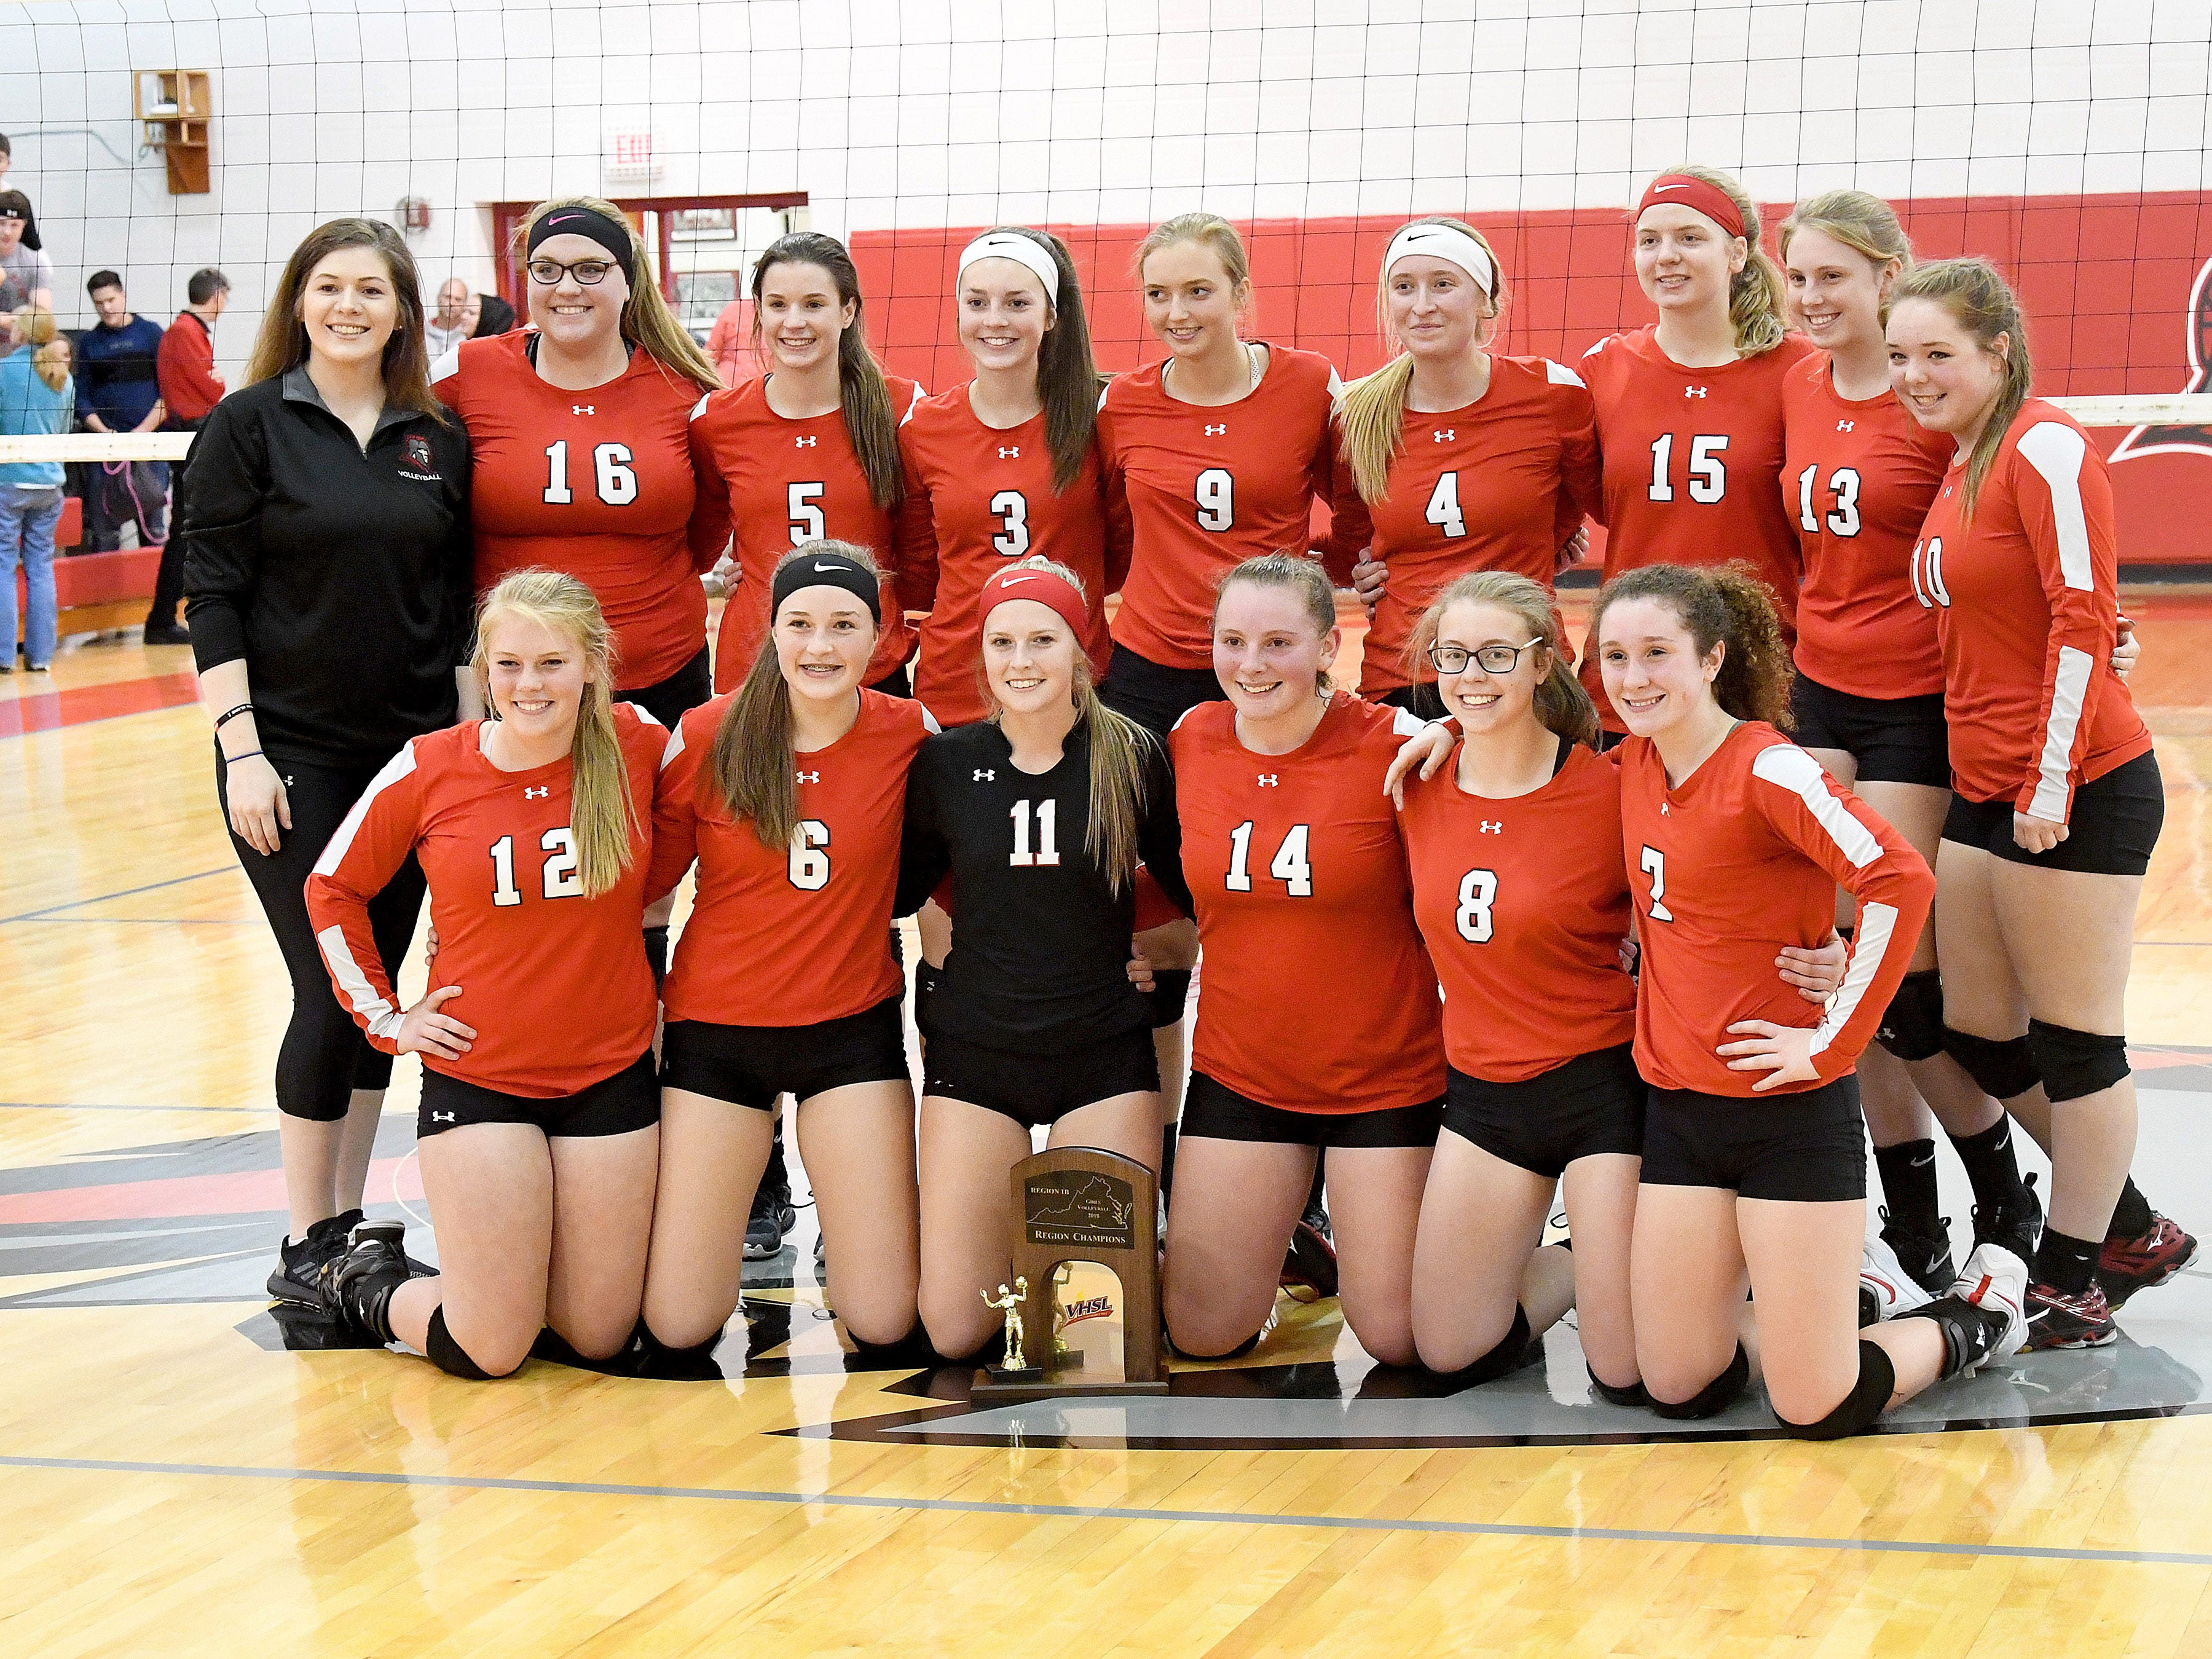 Riverheads defeated Altavista to win the Region 1B volleyball championship in a match played in Greenville on Wednesday, Nov. 7, 2018.